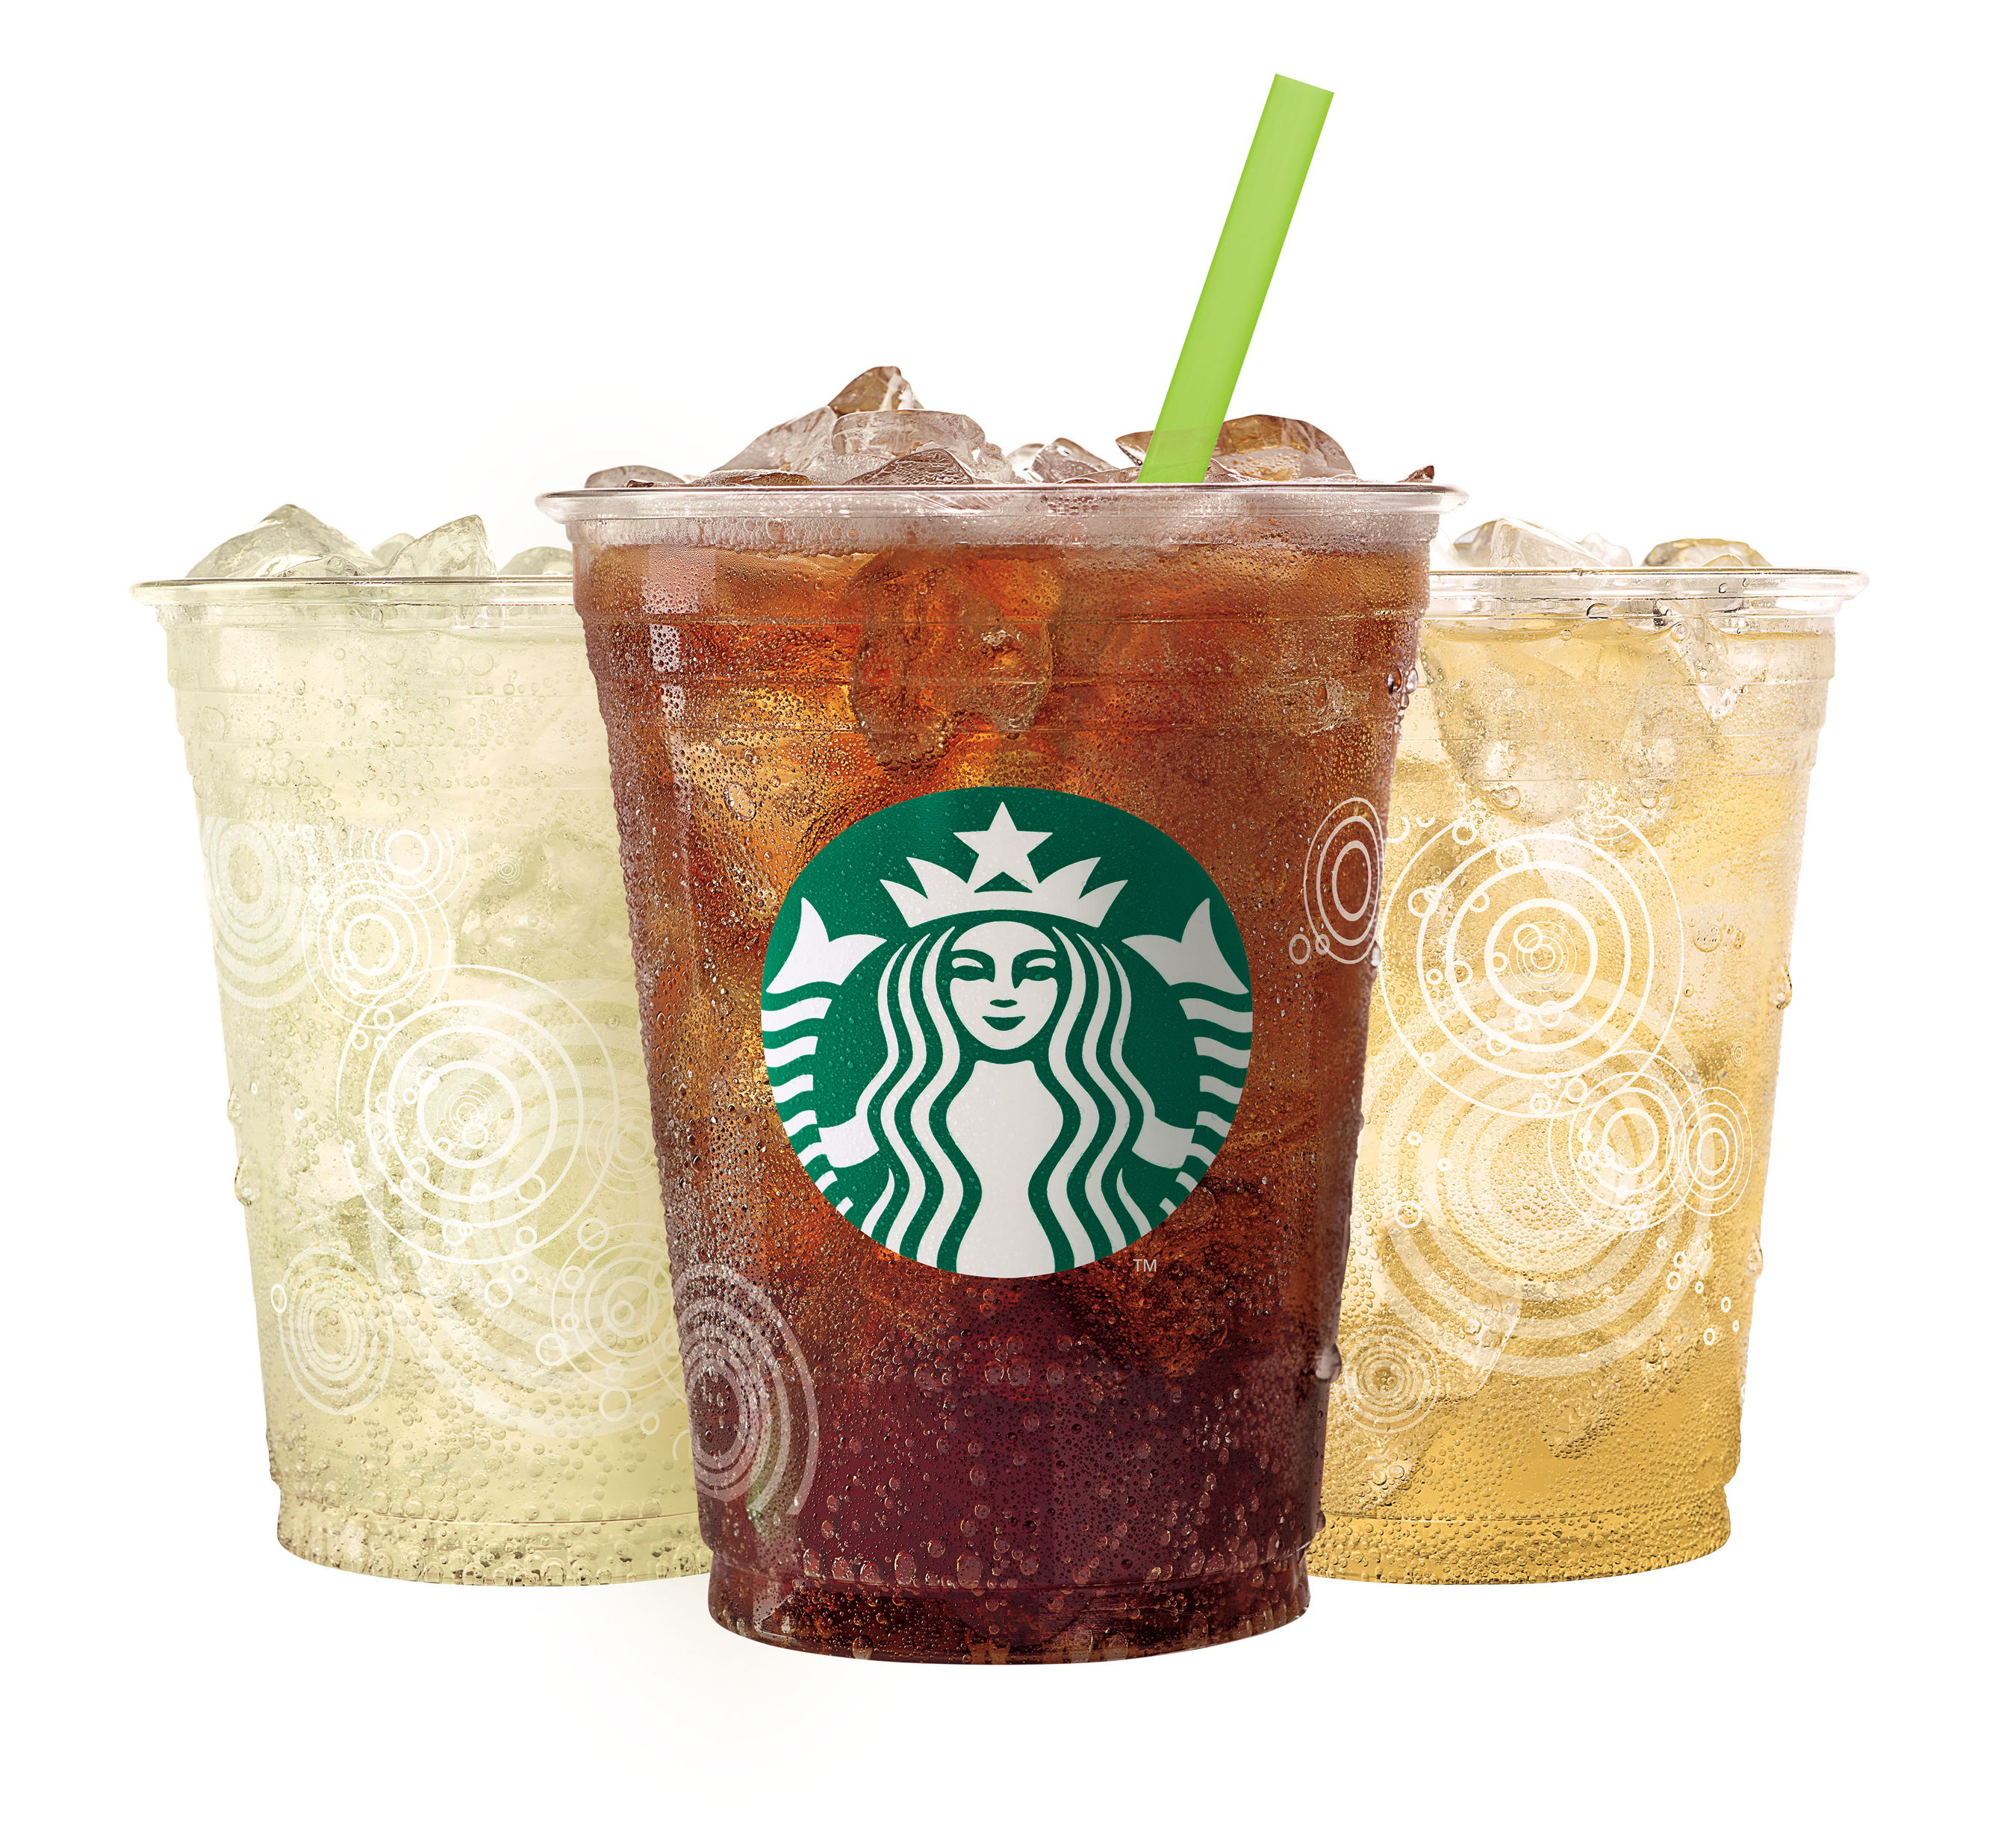 Fizzio™ Handcrafted Sodas are carbonated fresh and debut in select stores in three classic flavors with a Starbucks twist - Spiced Root Beer, Golden Ginger Ale and Lemon Ale. (Photo: Business Wire)